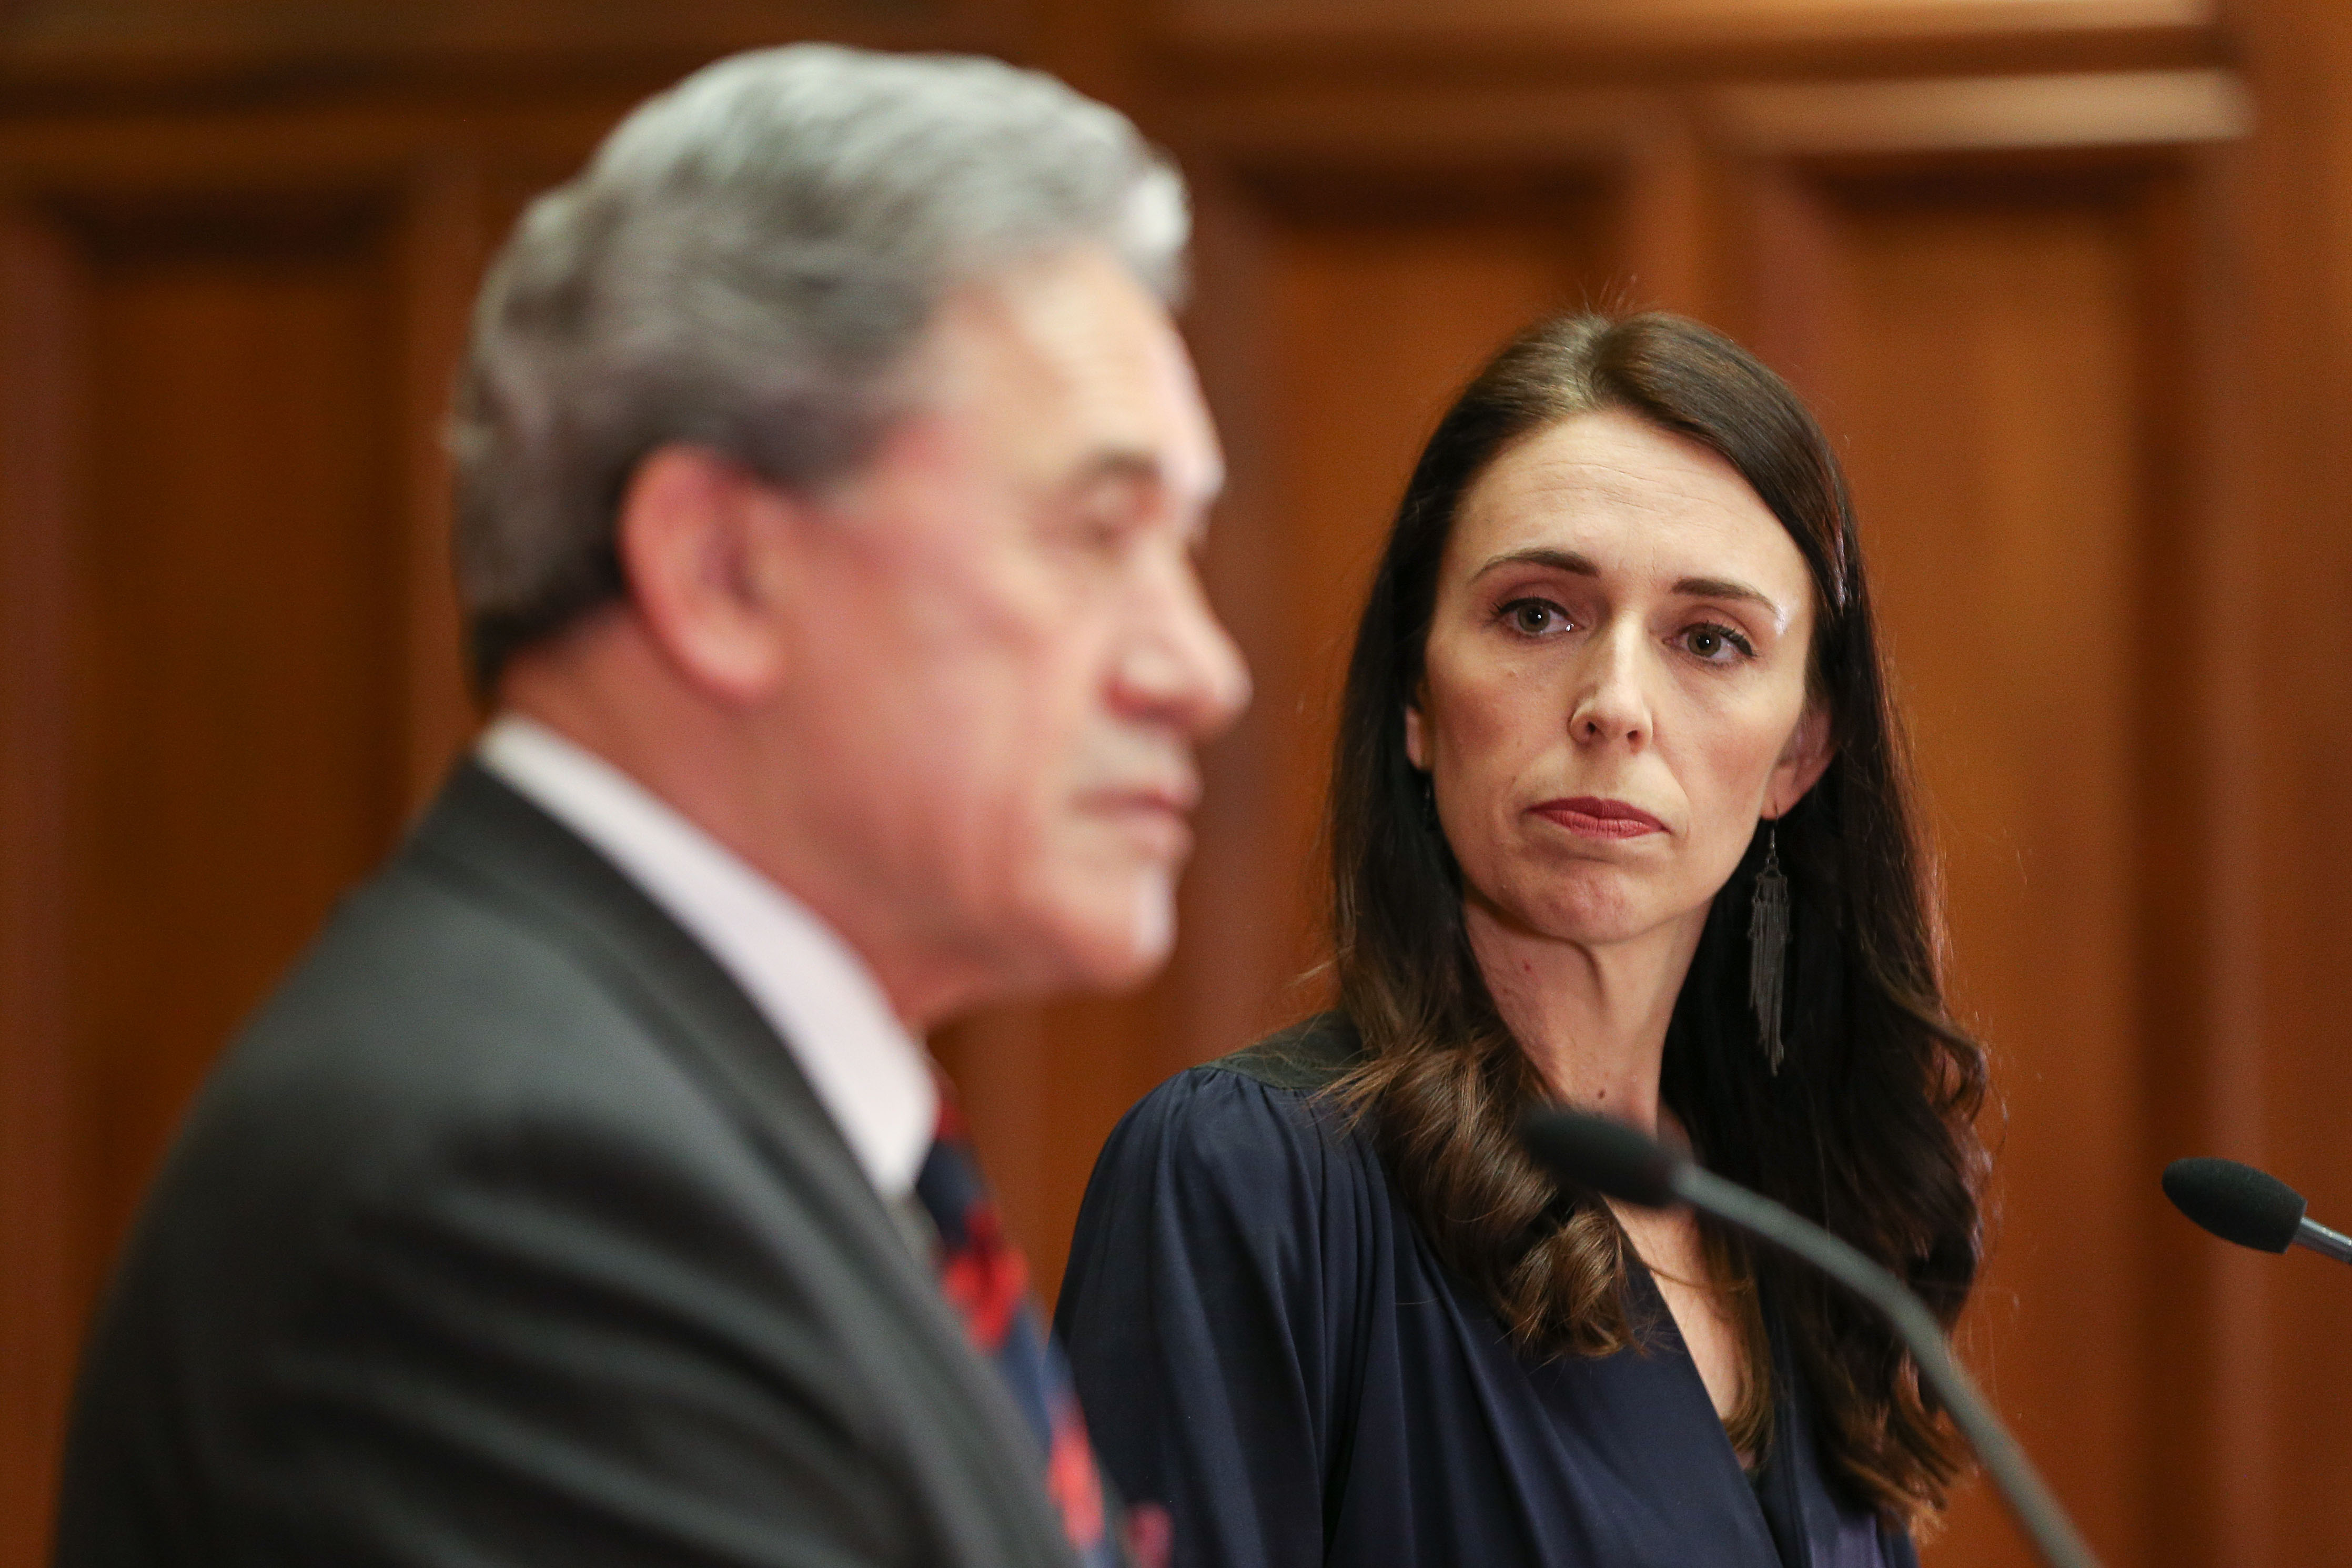 Then Prime Minister-designate Jacinda Ardern and New Zealand First leader Winston Peters speak to media during a coalition agreement signing at Parliament on October 24, 2017 in Wellington, New Zealand.